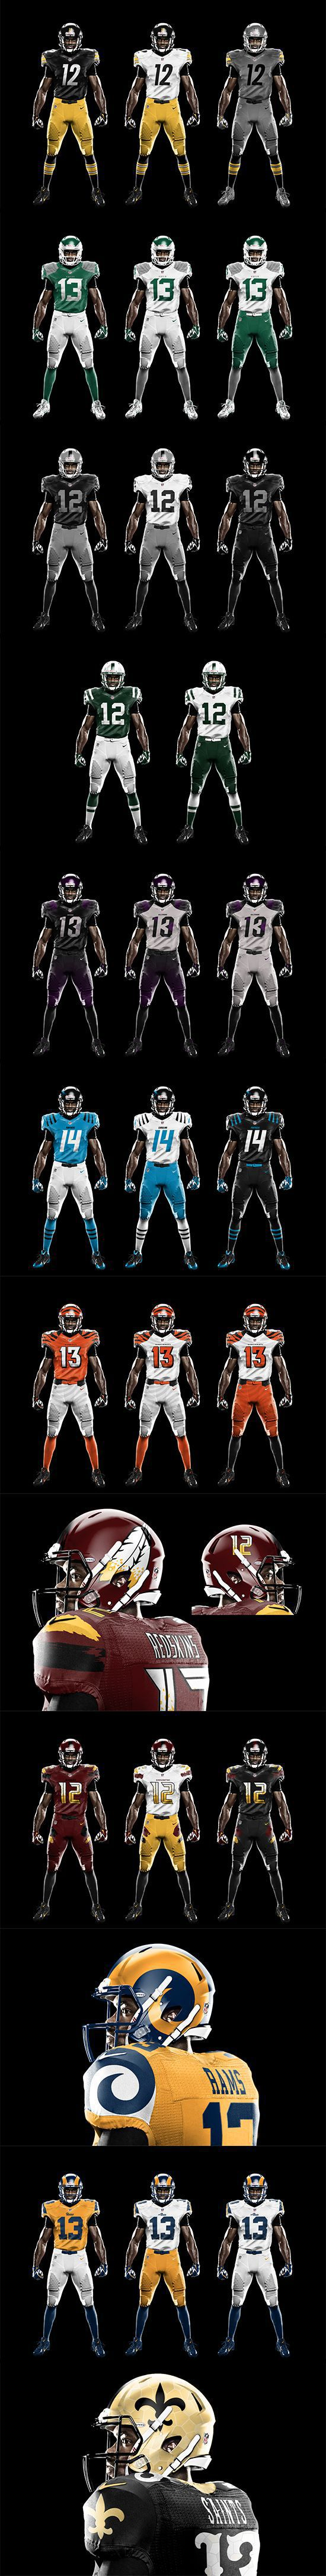 602958dd57e The difference between these and the many other NFL uniform redesign  concepts is that these are actually dope. Well done, Jesse Alkire.